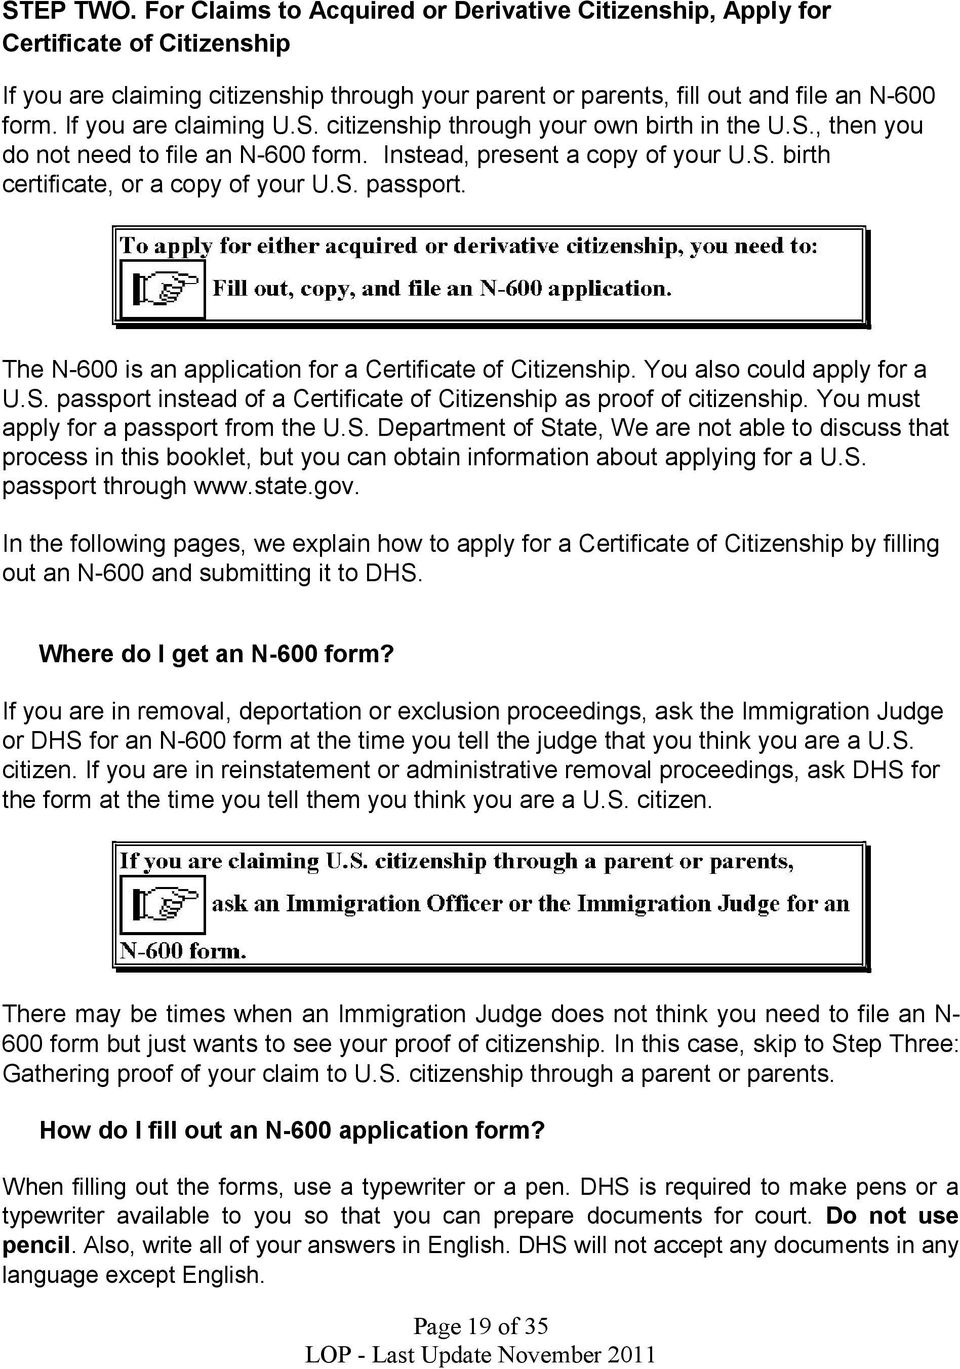 The N-600 is an application for a Certificate of Citizenship. You also could apply for a U.S. passport instead of a Certificate of Citizenship as proof of citizenship.